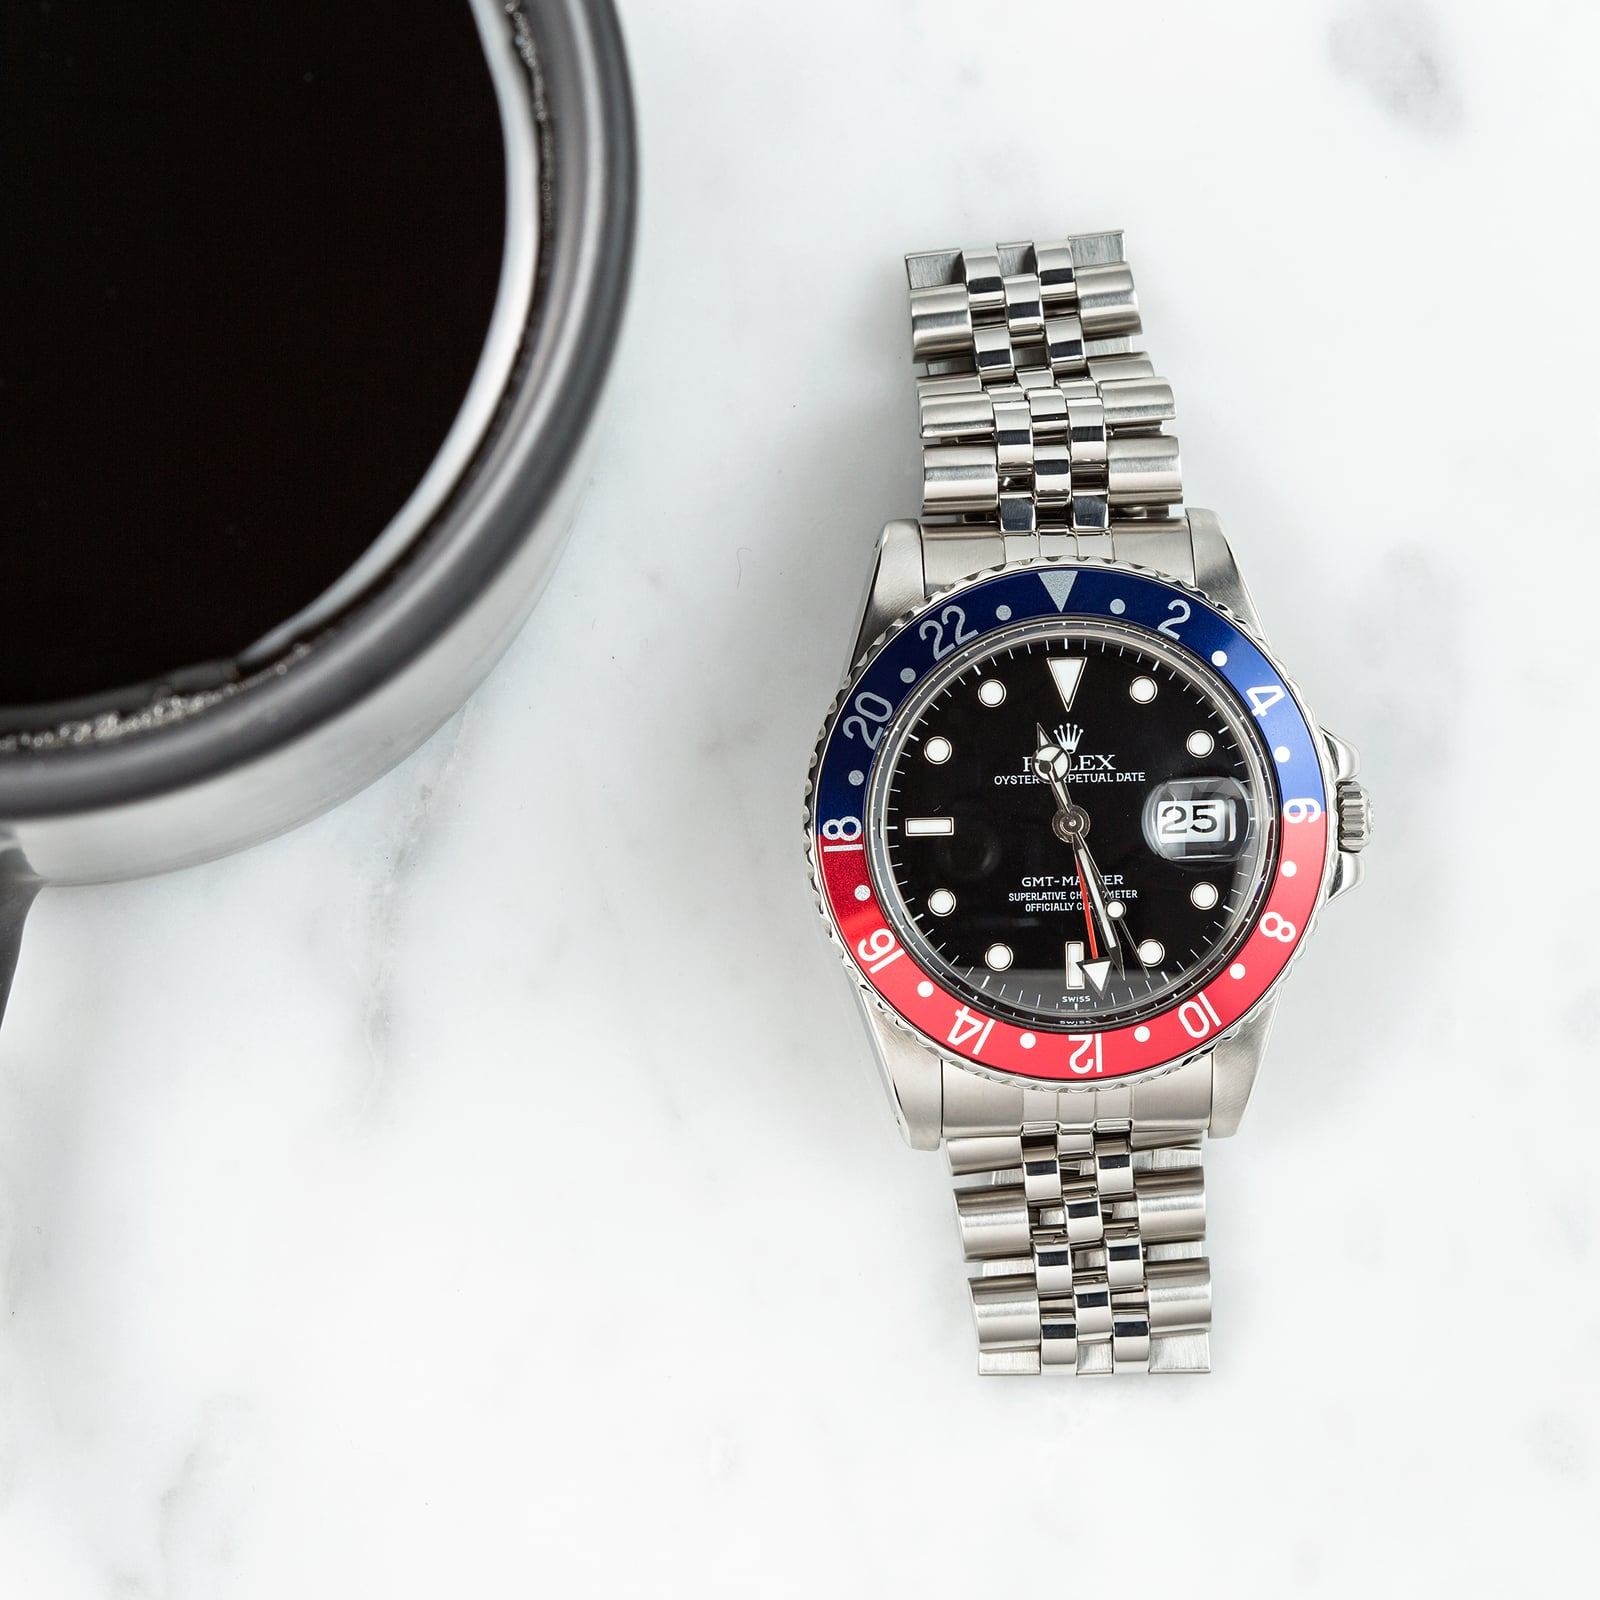 This Pepsi dial features a Blue and Red Bezel.